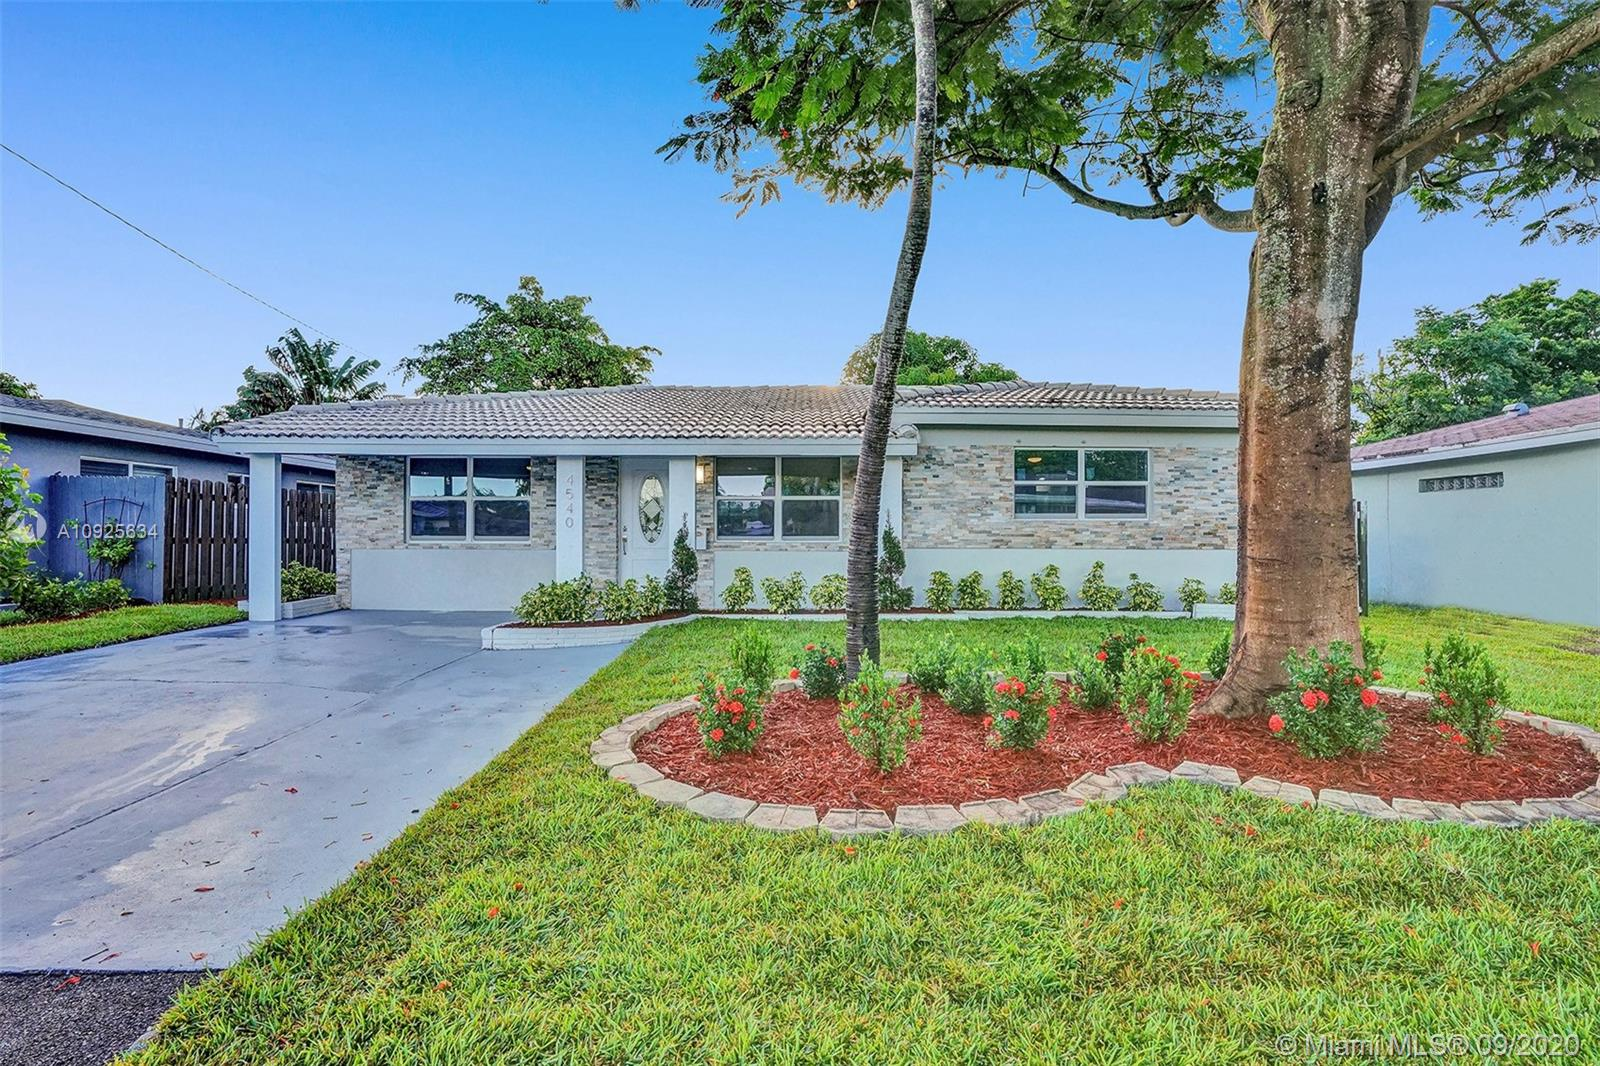 VERY UNIQUE BEAUTIFULLY REMODELED 4 BEDROOM 3 BATHROOM HOME (2 FULL MASTER BEDROOM), IN THE HEART OF OAKLAND PARK! PERFECT TURN-KEY HOME OR VACATION RENTAL OPPORTUNITY! HOME FEATURES ALL HURRICANE IMPACT WINDOWS AND DOORS, 2004 TILE ROOF, BRAND NEW TANKLESS WATER HEATER, NEW BATHROOMS, NEW IRRIGATION SYSTEM WITH NEW GRASS AND PLANTS, NEW CUSTOM KITCHEN WITH HIGH-END EUROPEAN CABINETS, QUARTZ COUNTERTOP, RECESSED LIGHTING THROUGHOUT, SEPARATE LAUNDRY ROOM, VERY LARGE BACKYARD WITH ROOM FOR A POOL, SPACIOUS DRIVEWAY, FRESHLY PAINTED INSIDE/OUT... MINUTES FROM SCHOOLS, BEACH, SHOPPING PLAZAS, ETC... HURRY THIS WONT LAST LONG!! *** BRAND NEW STAINLESS STEEL APPLIANCES WILL BE INSTALLED PRIOR TO CLOSING***